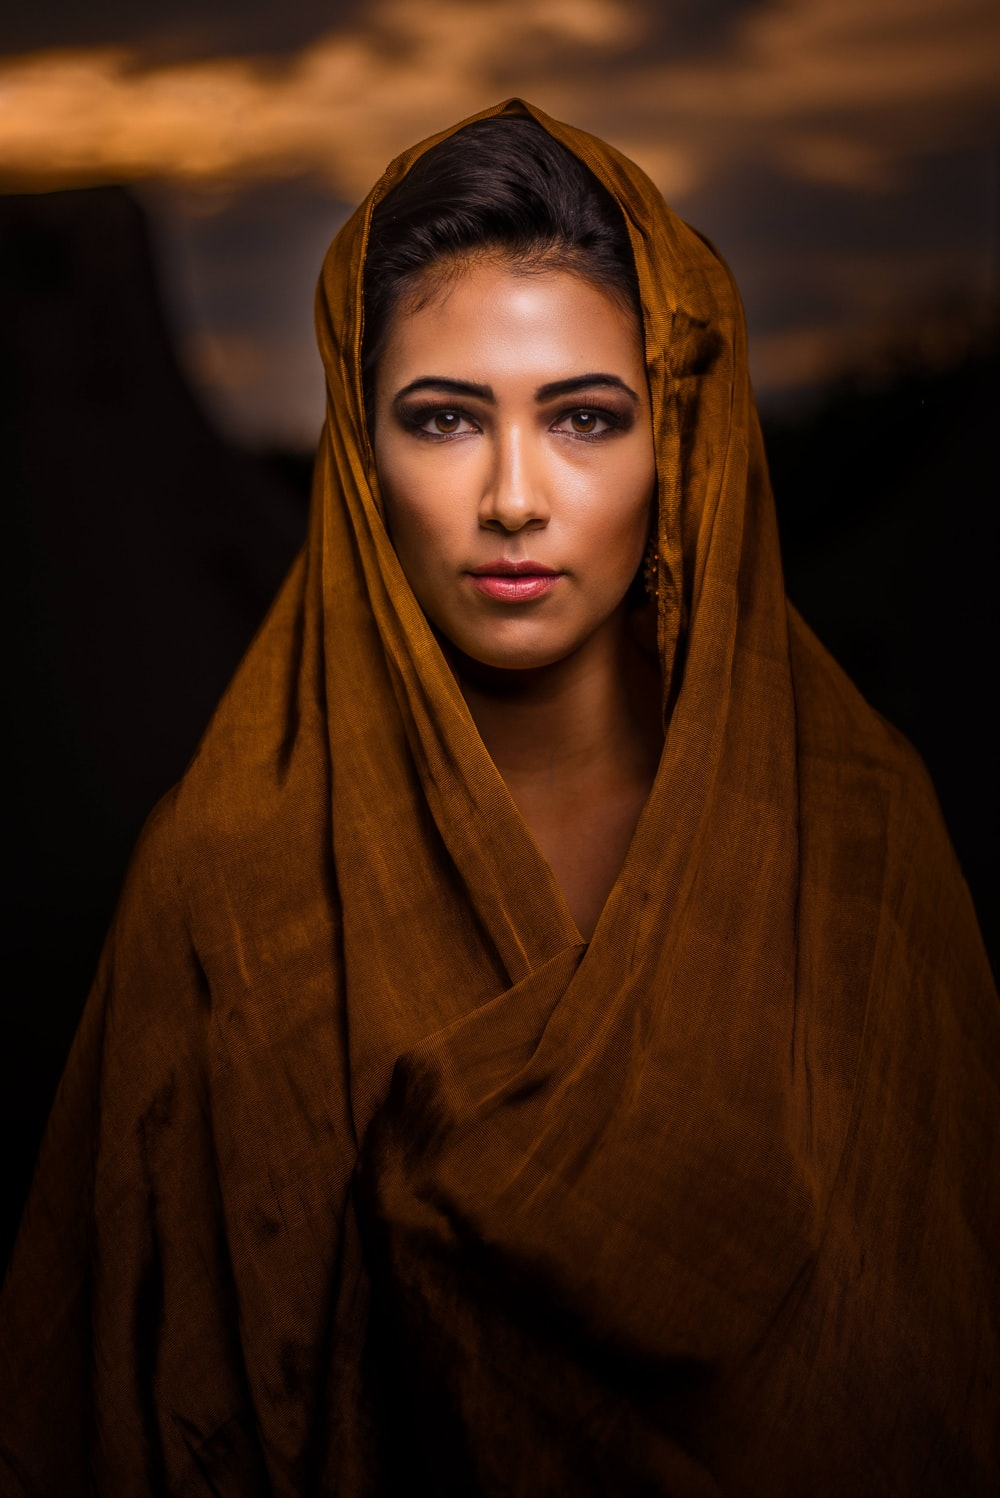 portrait photography of woman wearing brown headscarf